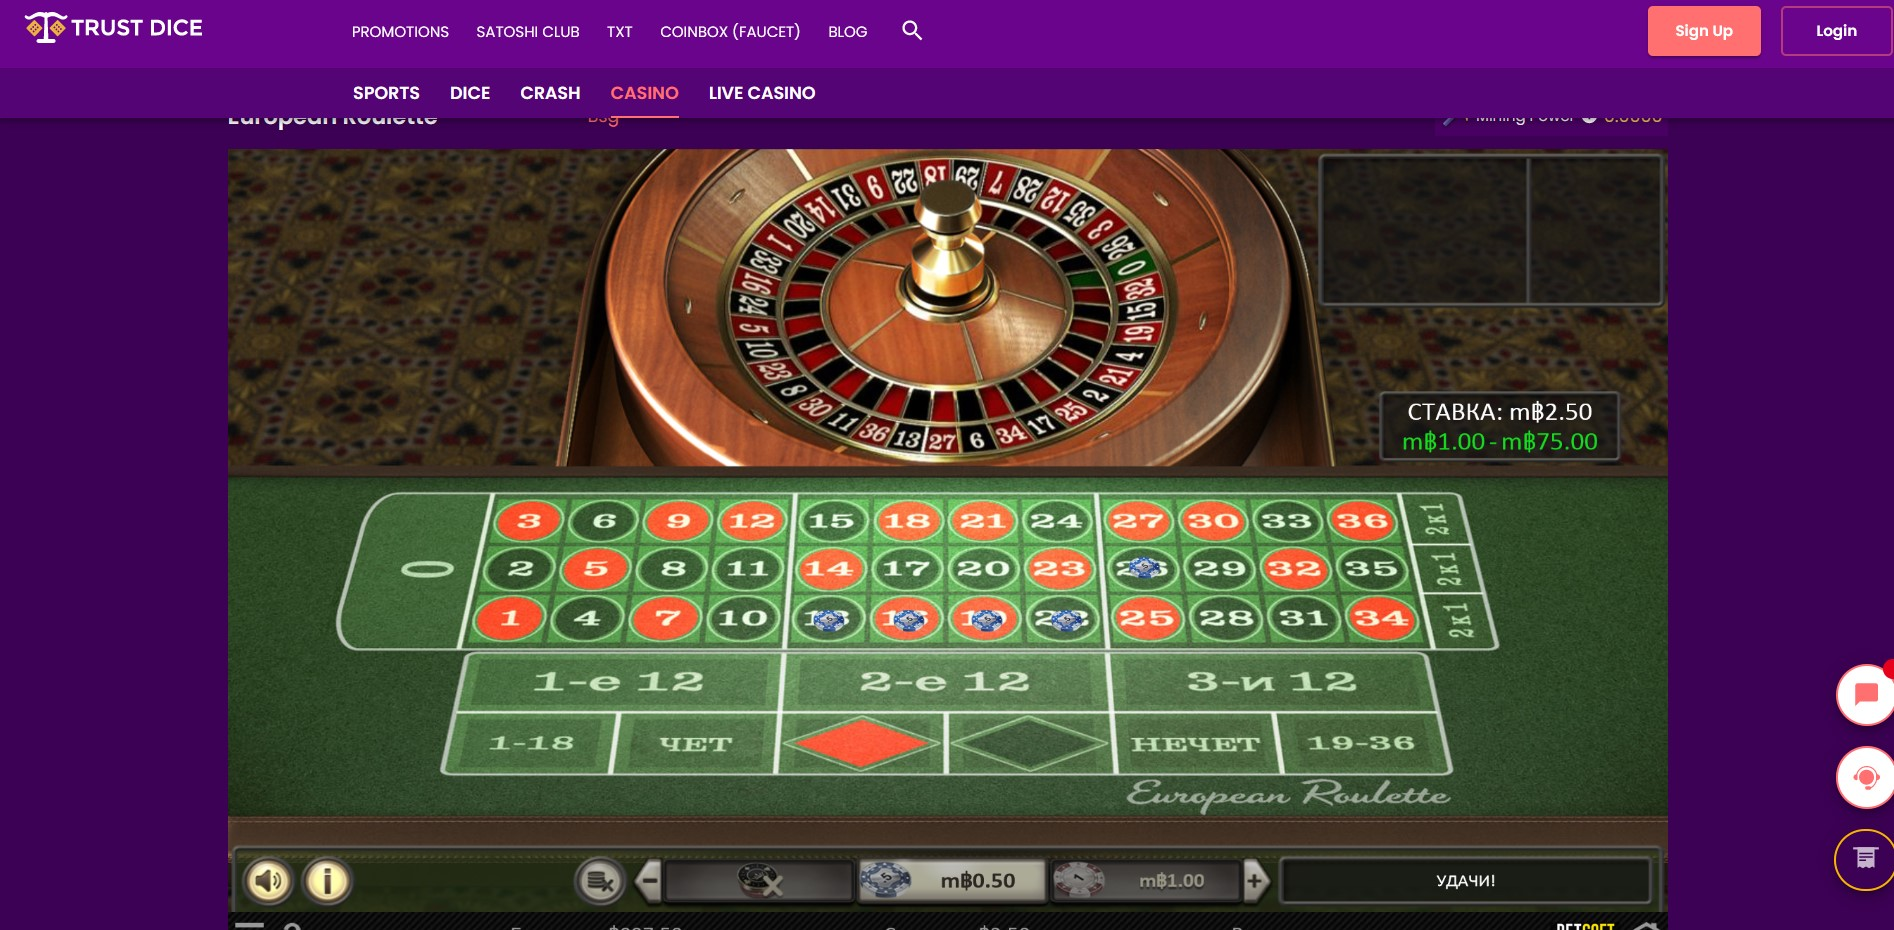 Trust Dice Casino Games